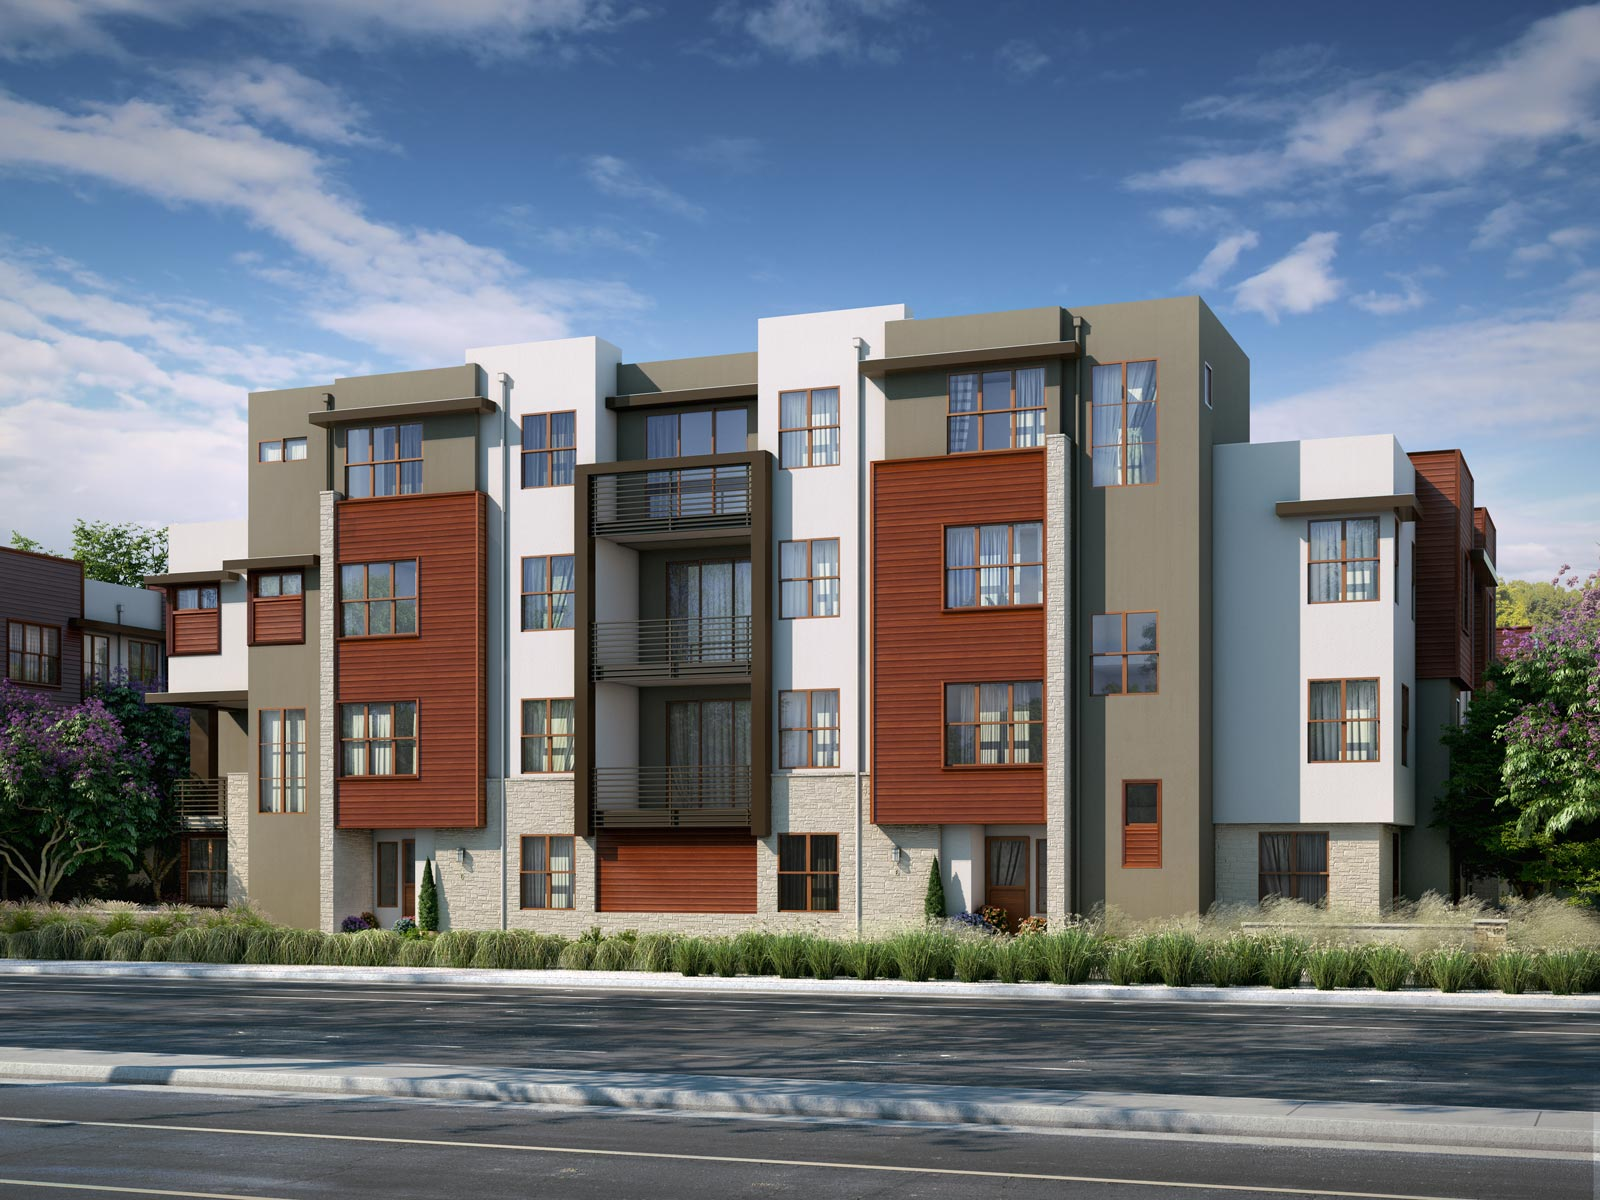 New Townhomes in Dublin CA